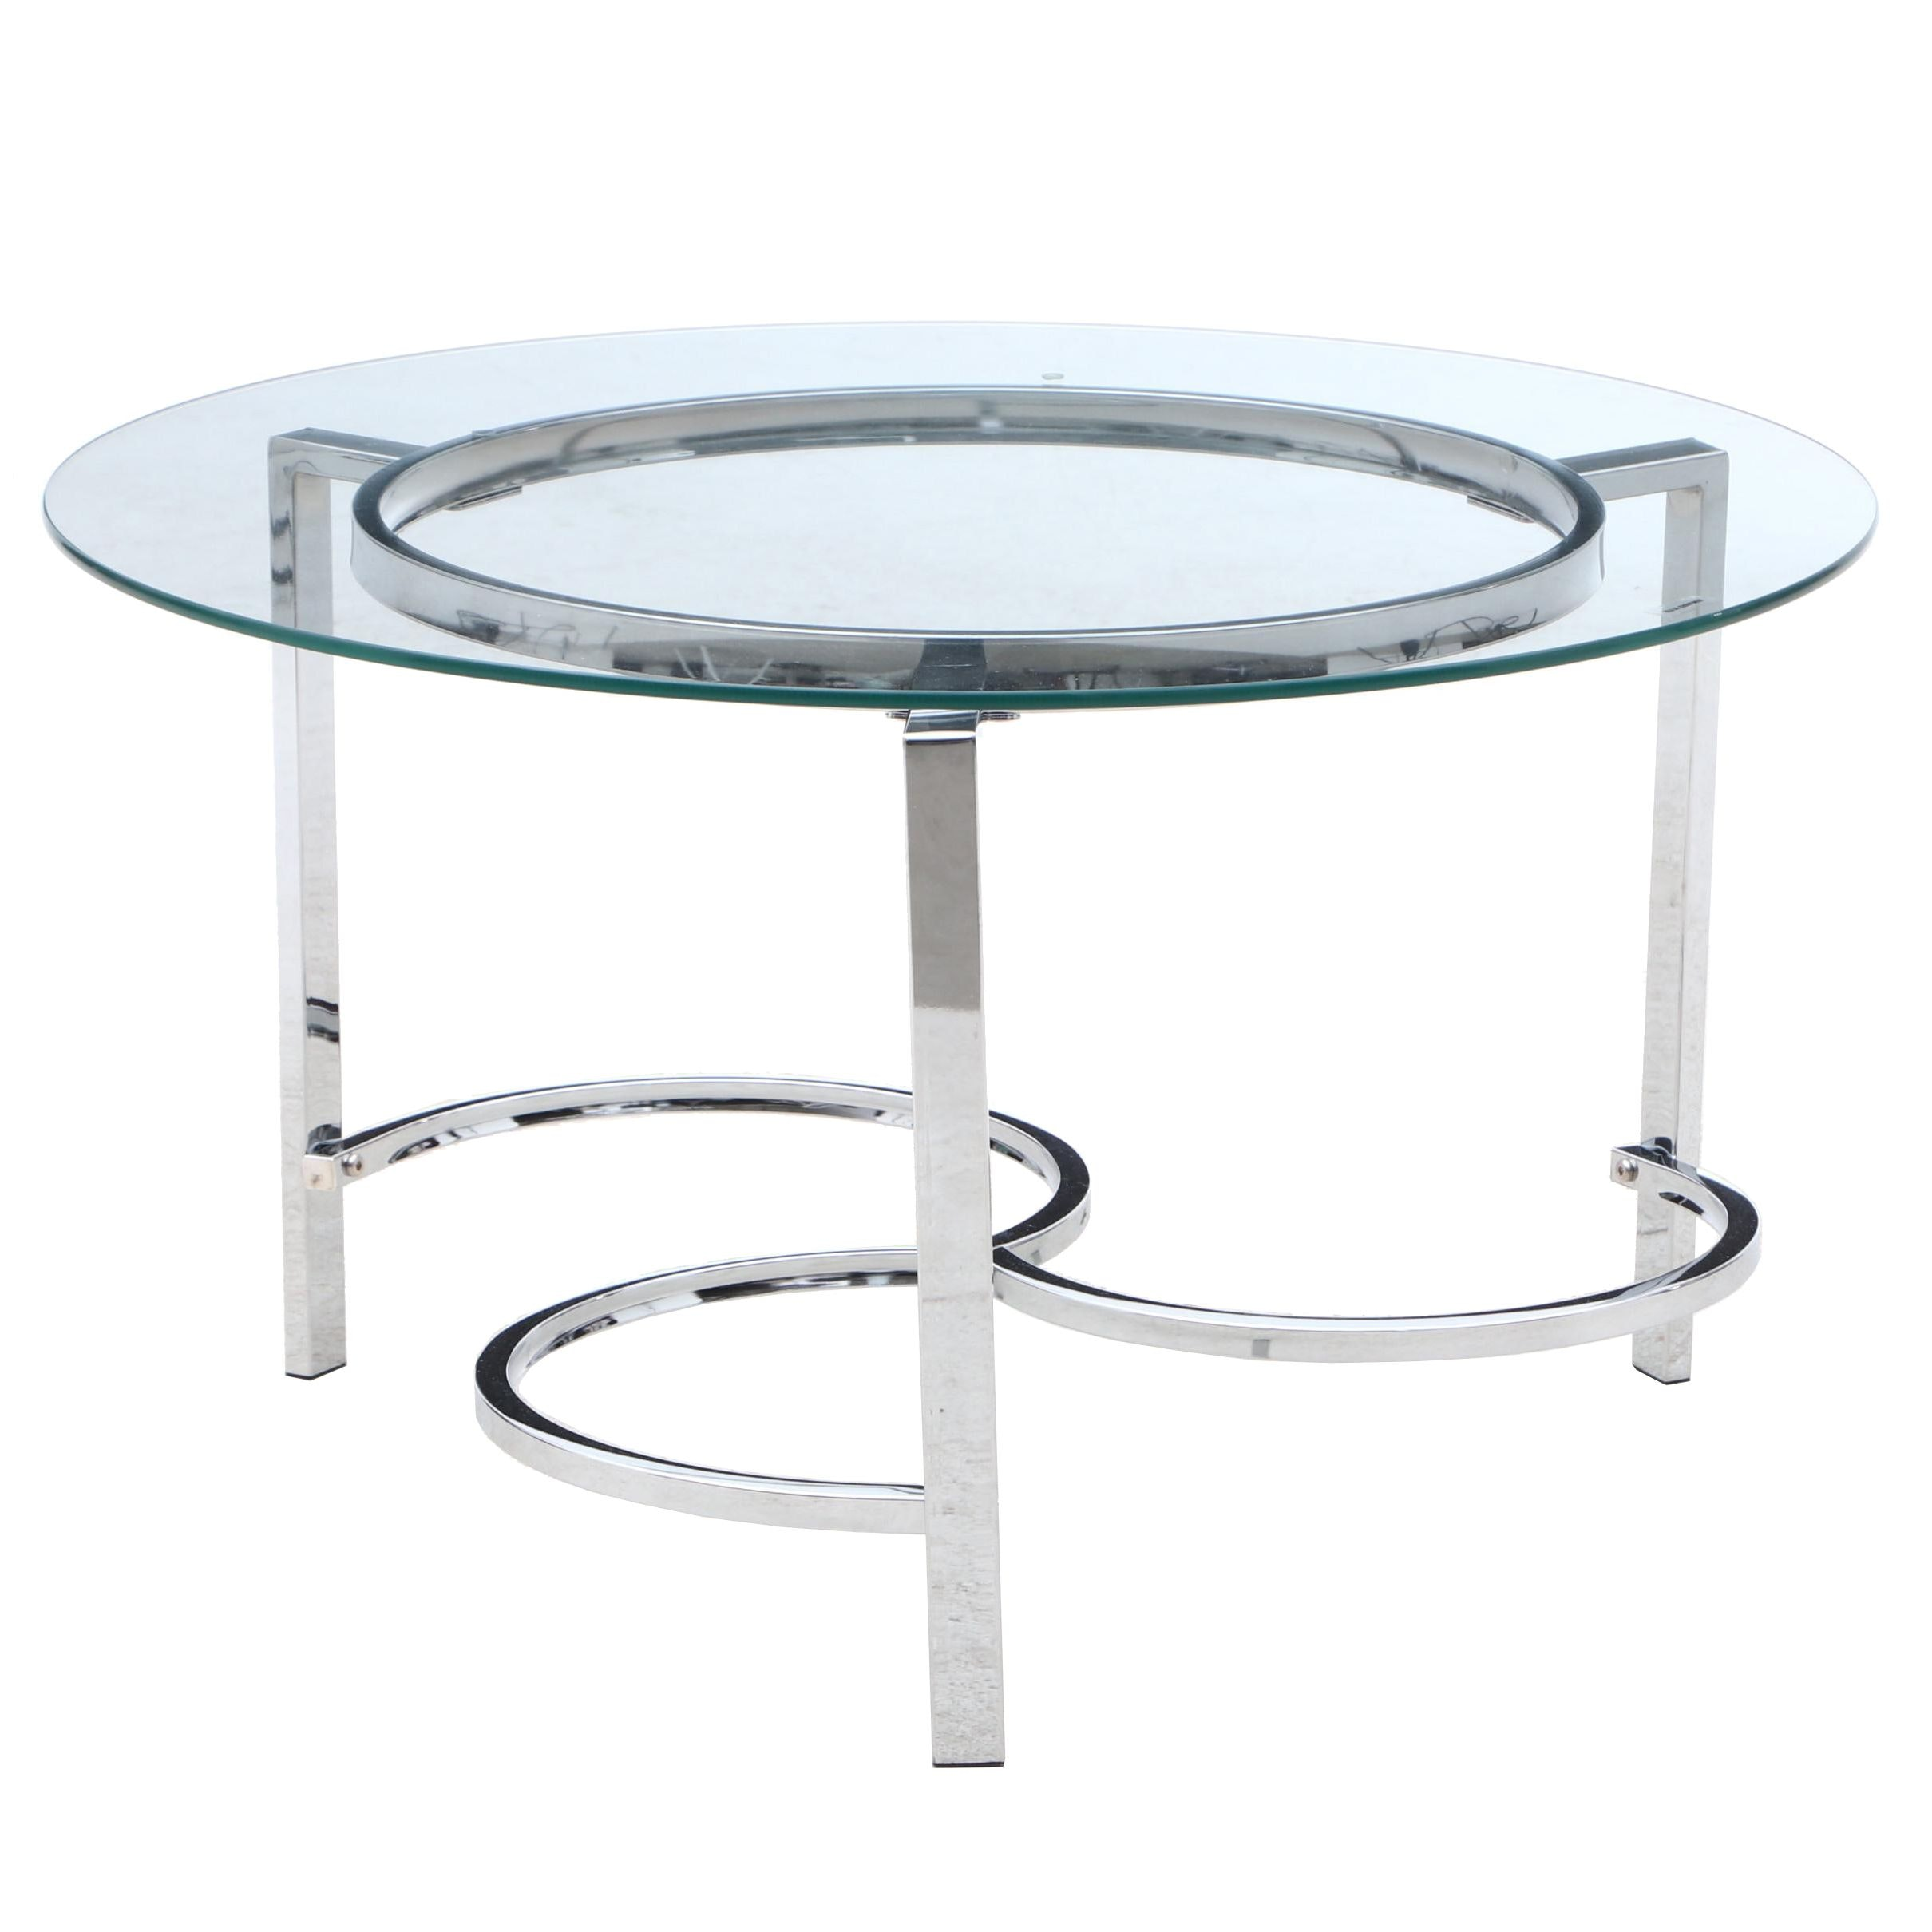 Contemporary Modern Glass Top Chrome Frame Coffee Table